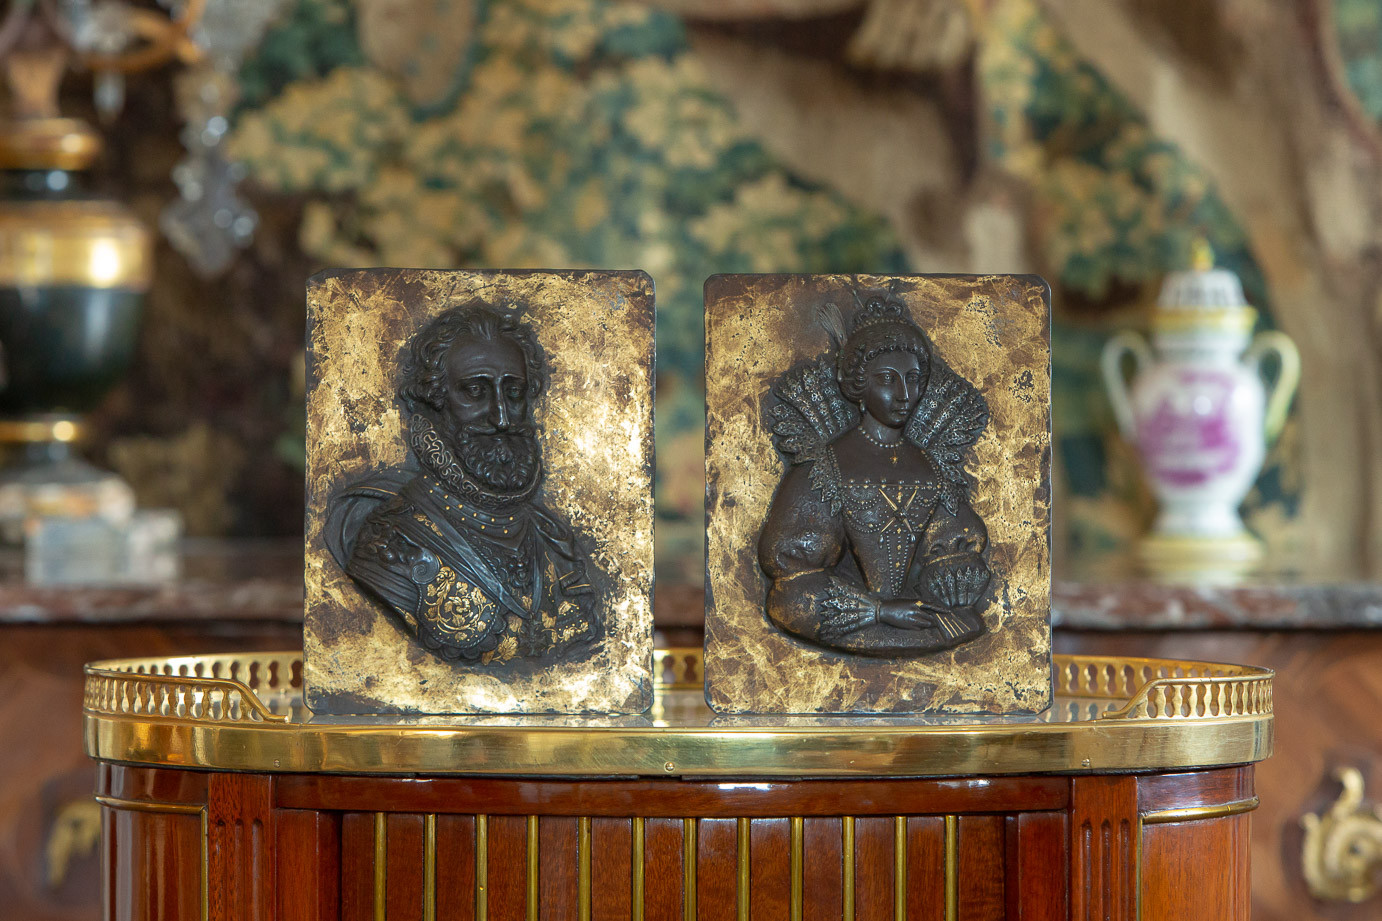 Attr. to Guillaume Dupre (1574-1642)  - Bust of Henri IV and Marie de Medici, iron plates enhanced with gold , 17th century